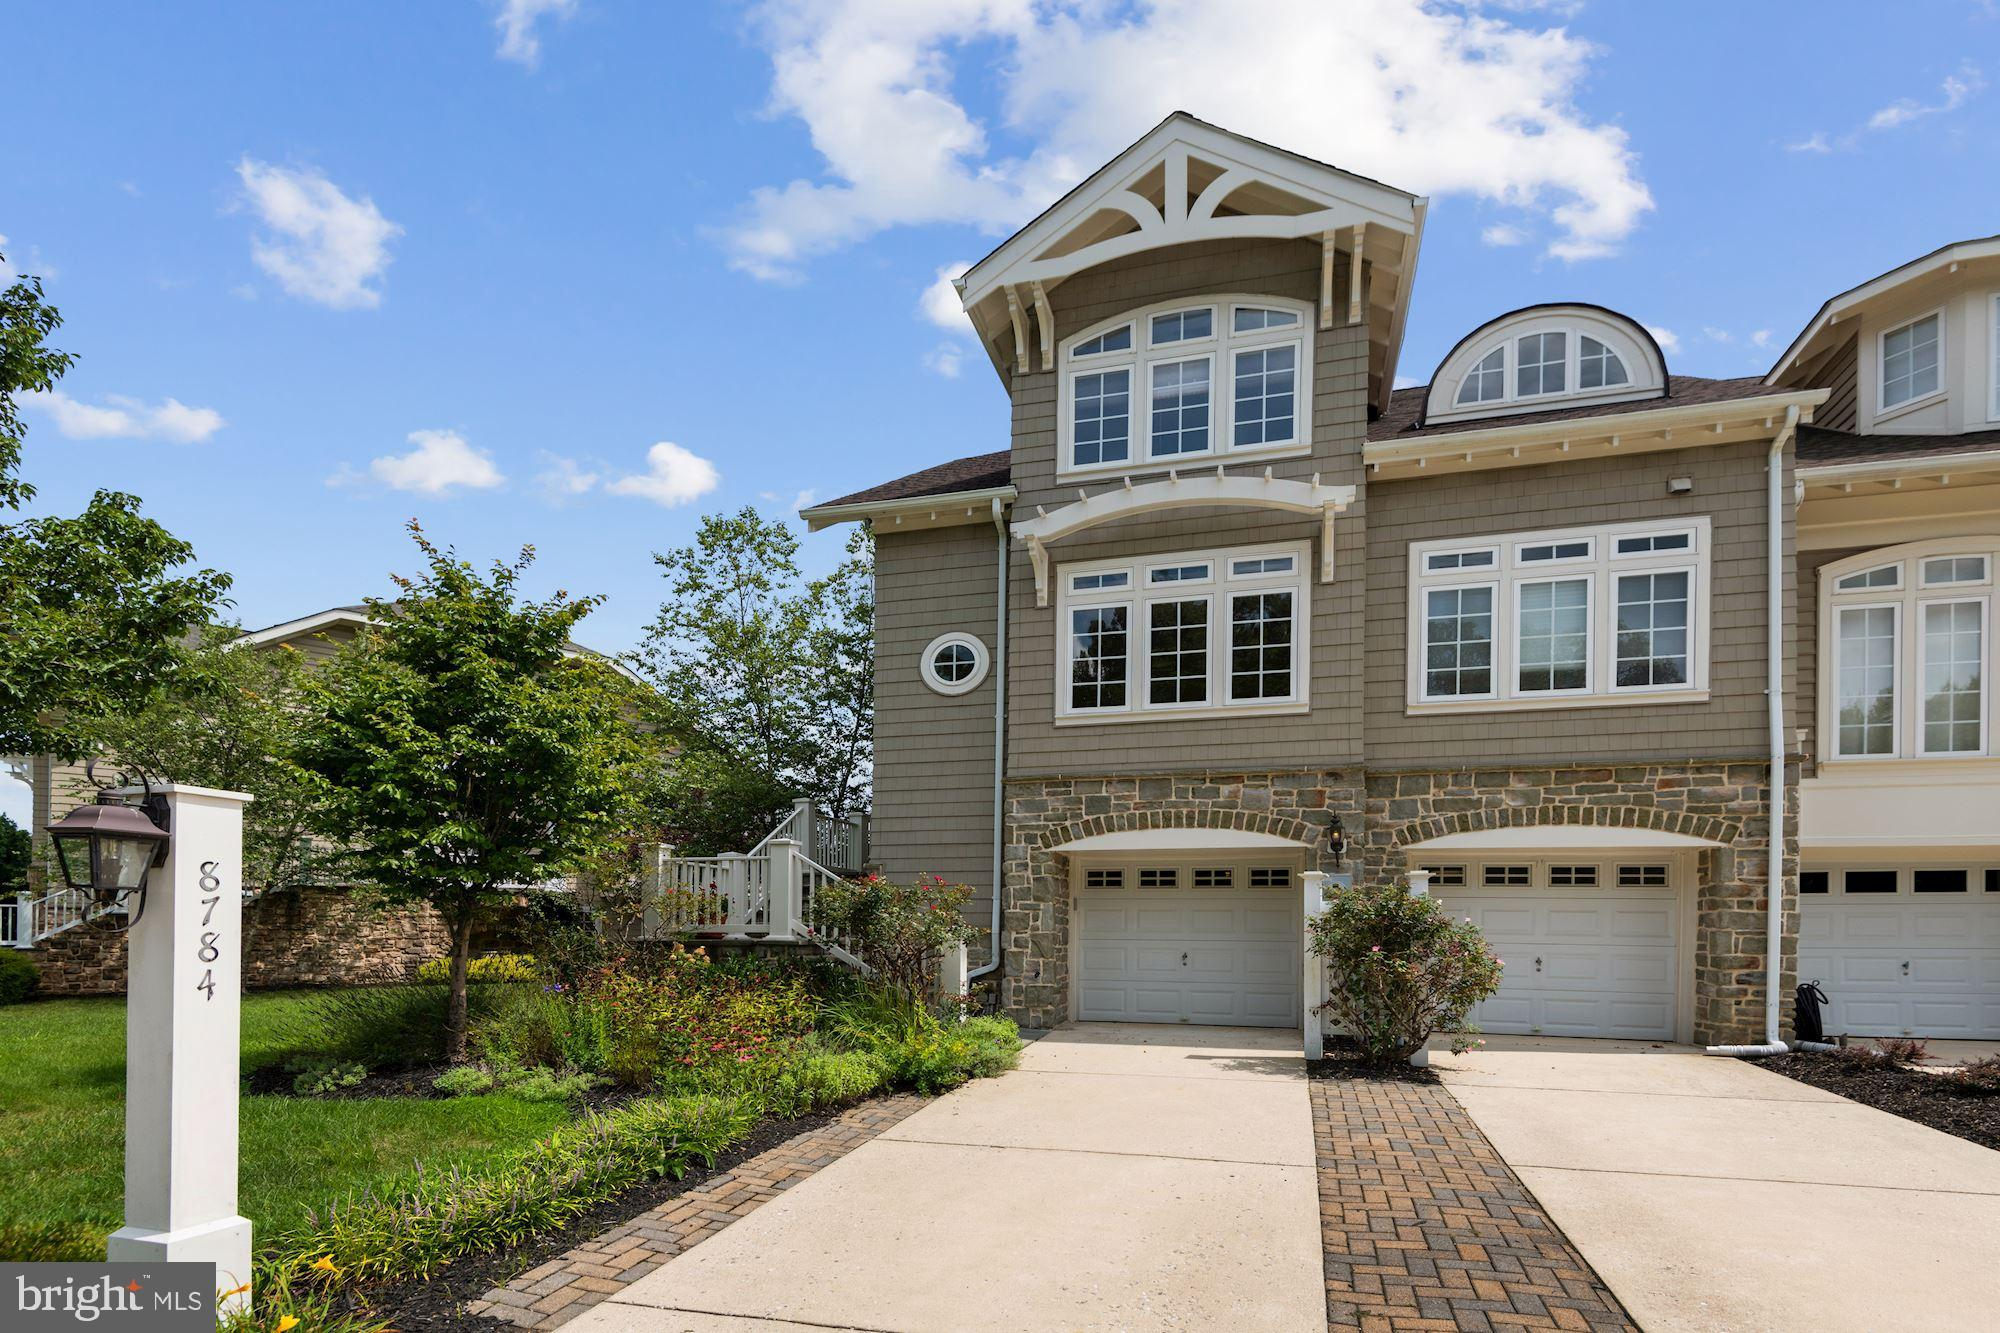 Come home to this stylish & bright lakefront 4 bedroom, 3.5 bath end-unit townhouse with year round